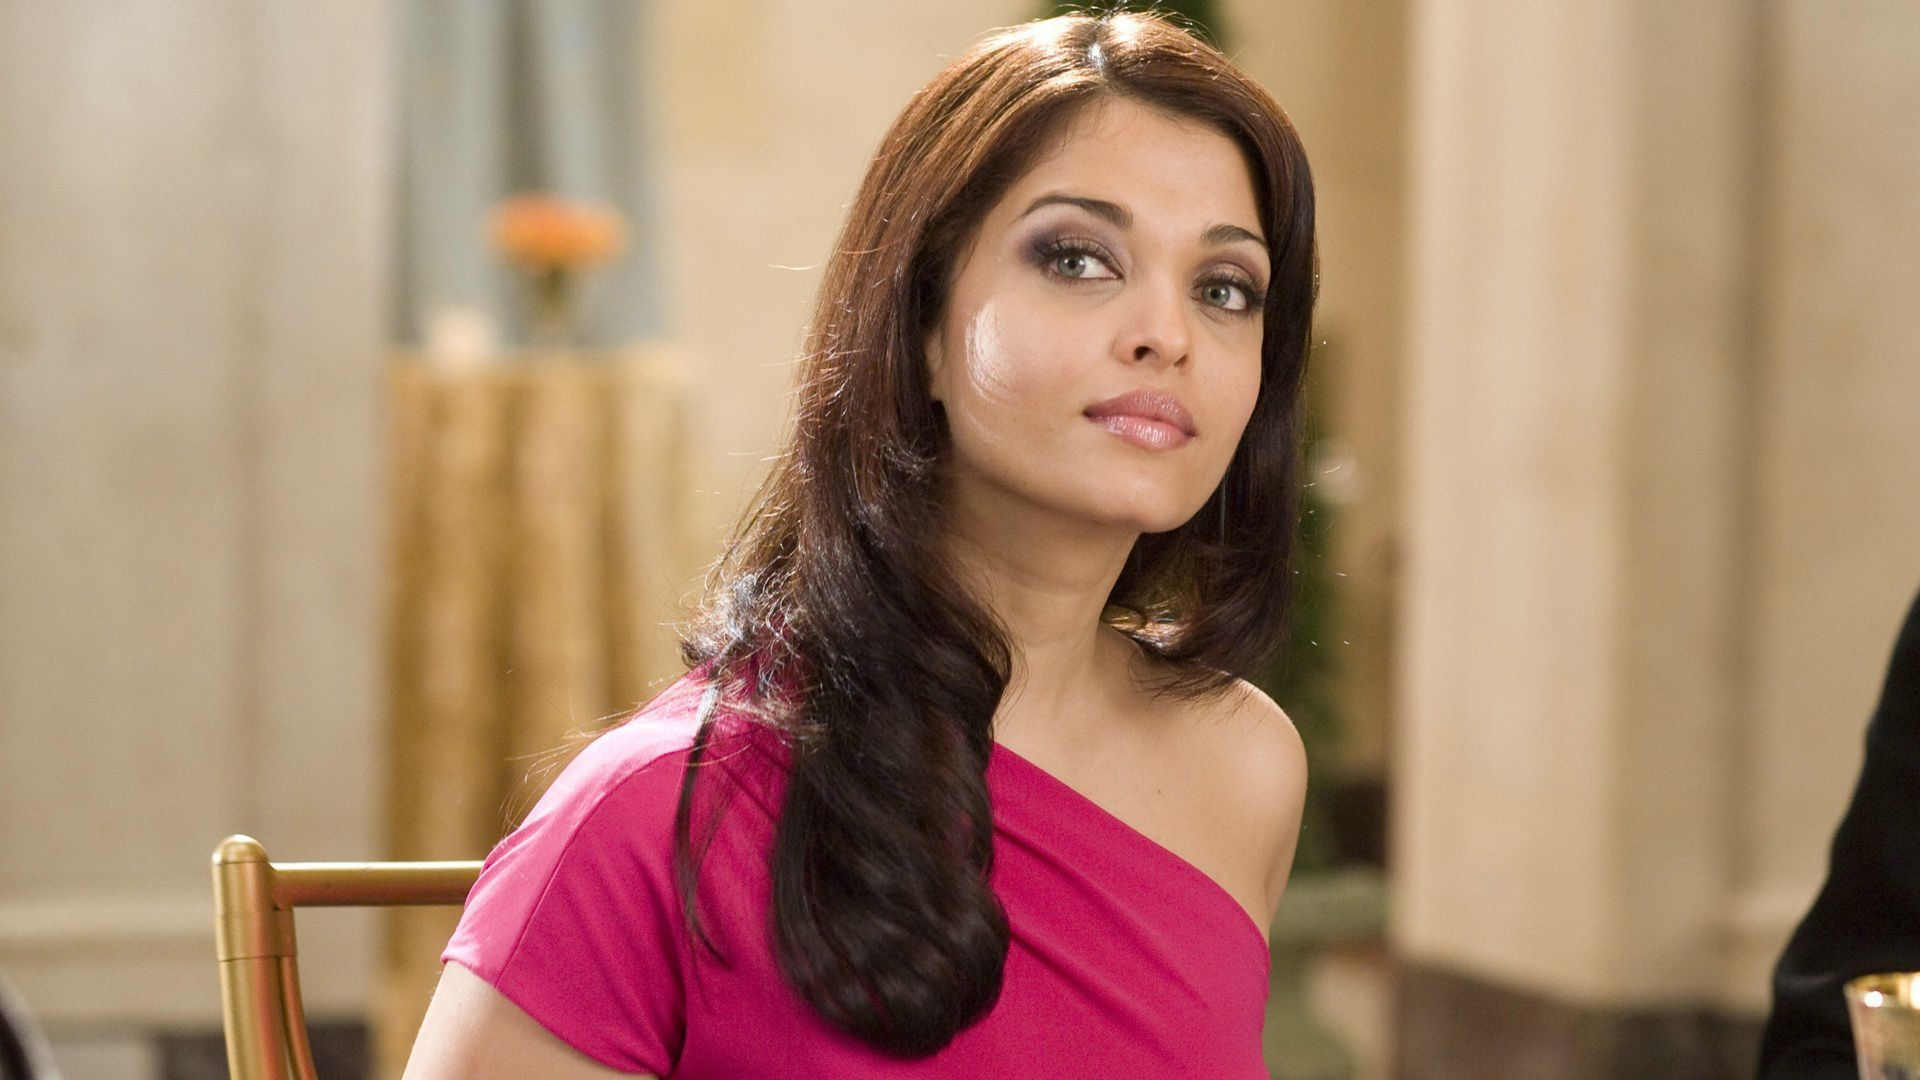 Aishwarya Rai Bachchan For Desktop